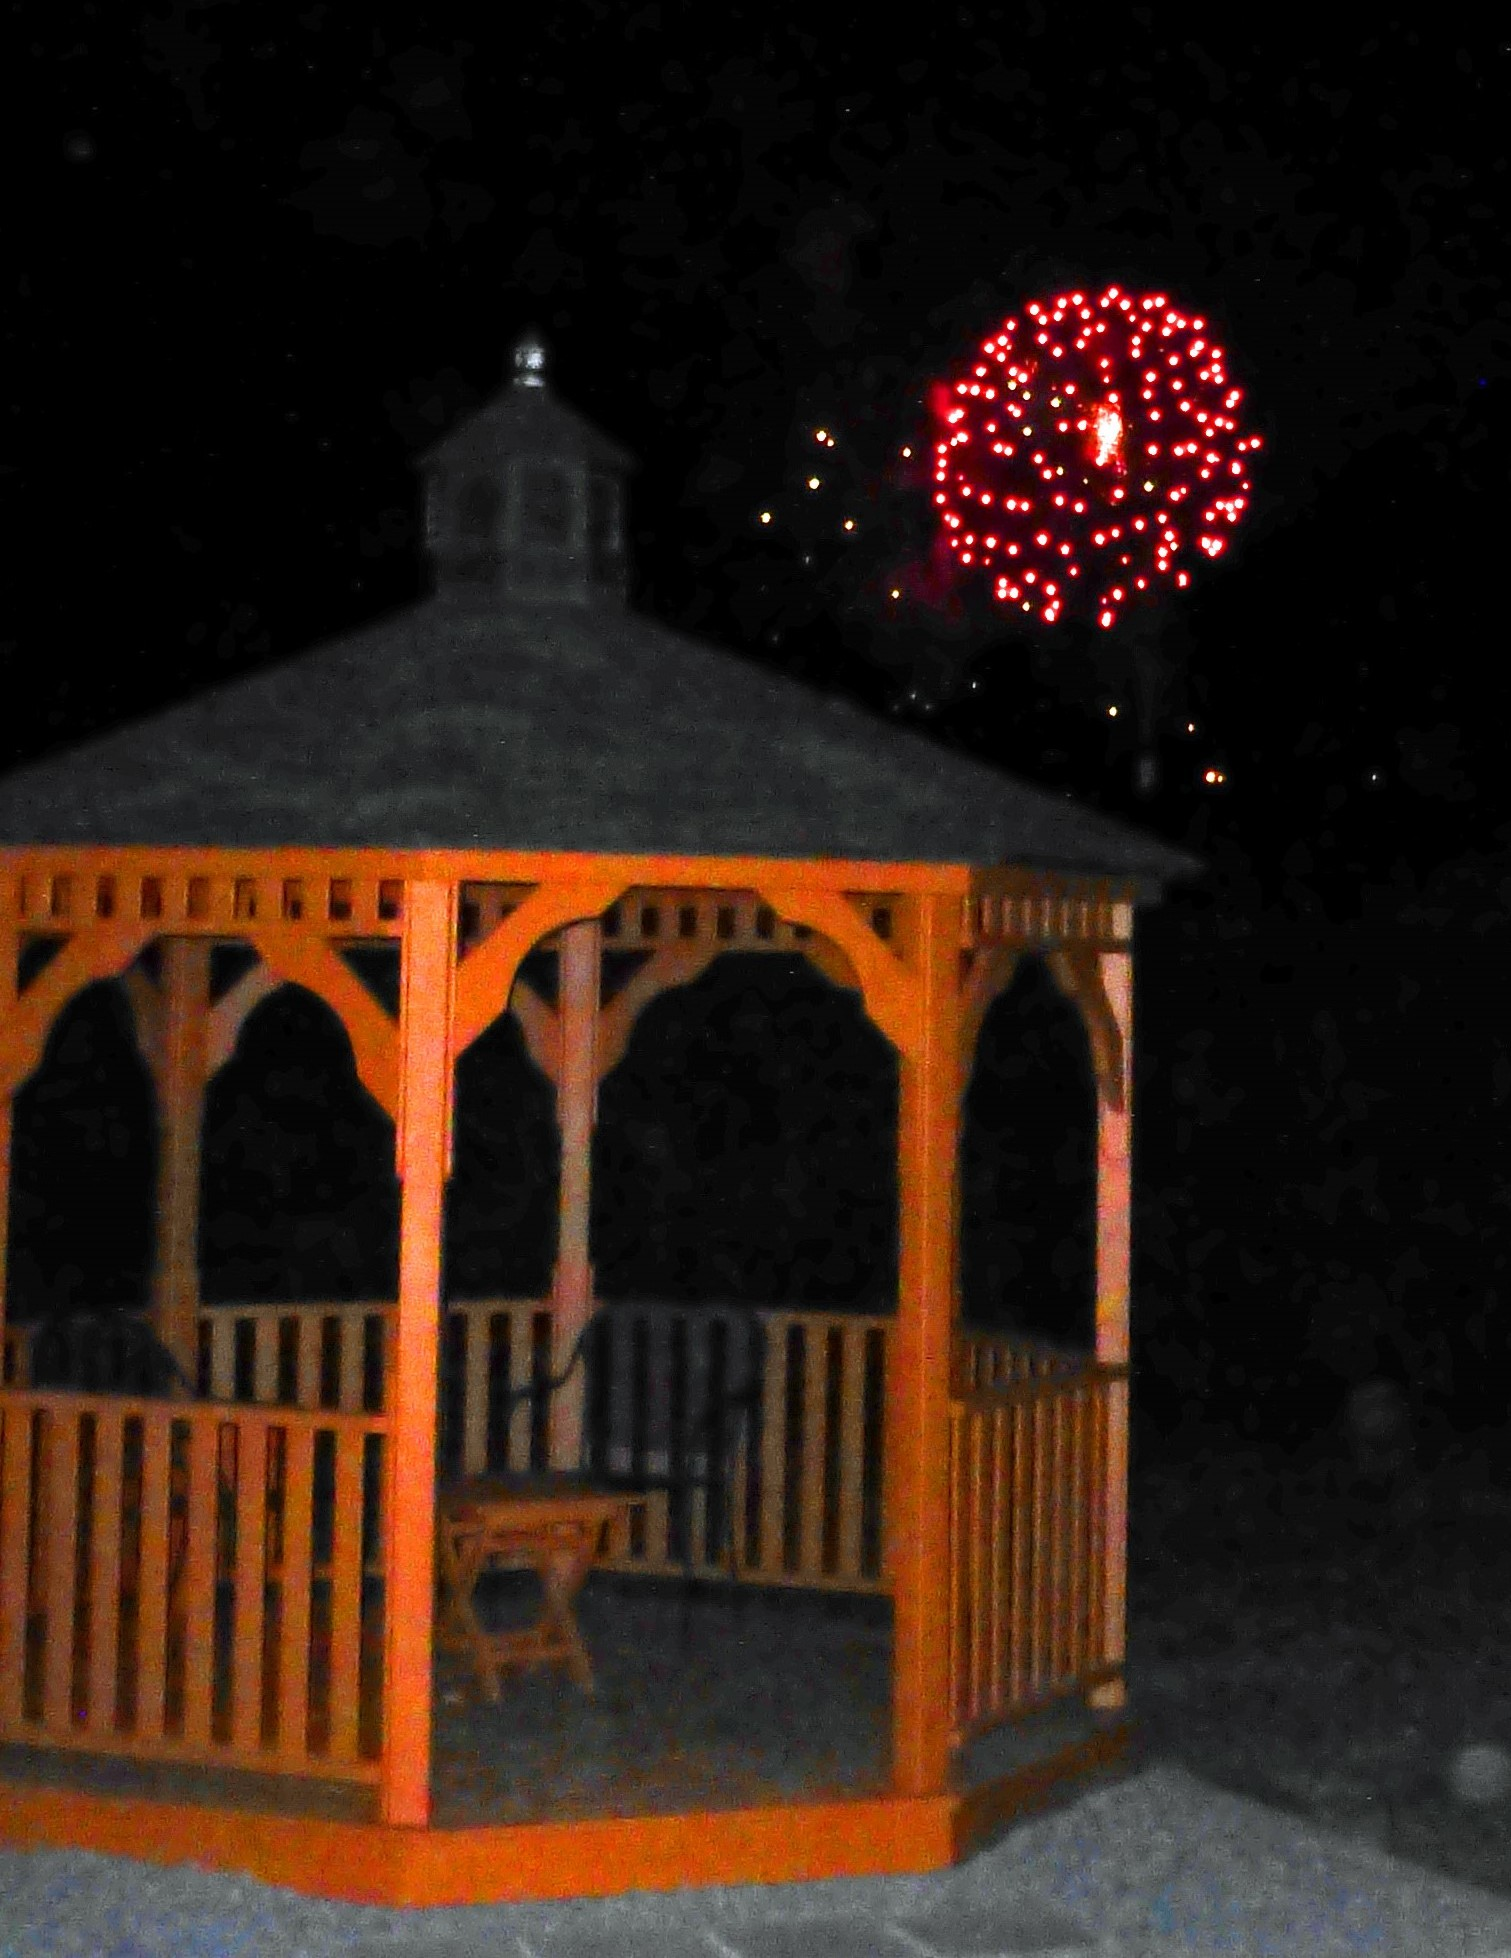 Fireworks exploding red crystals over the gazebo